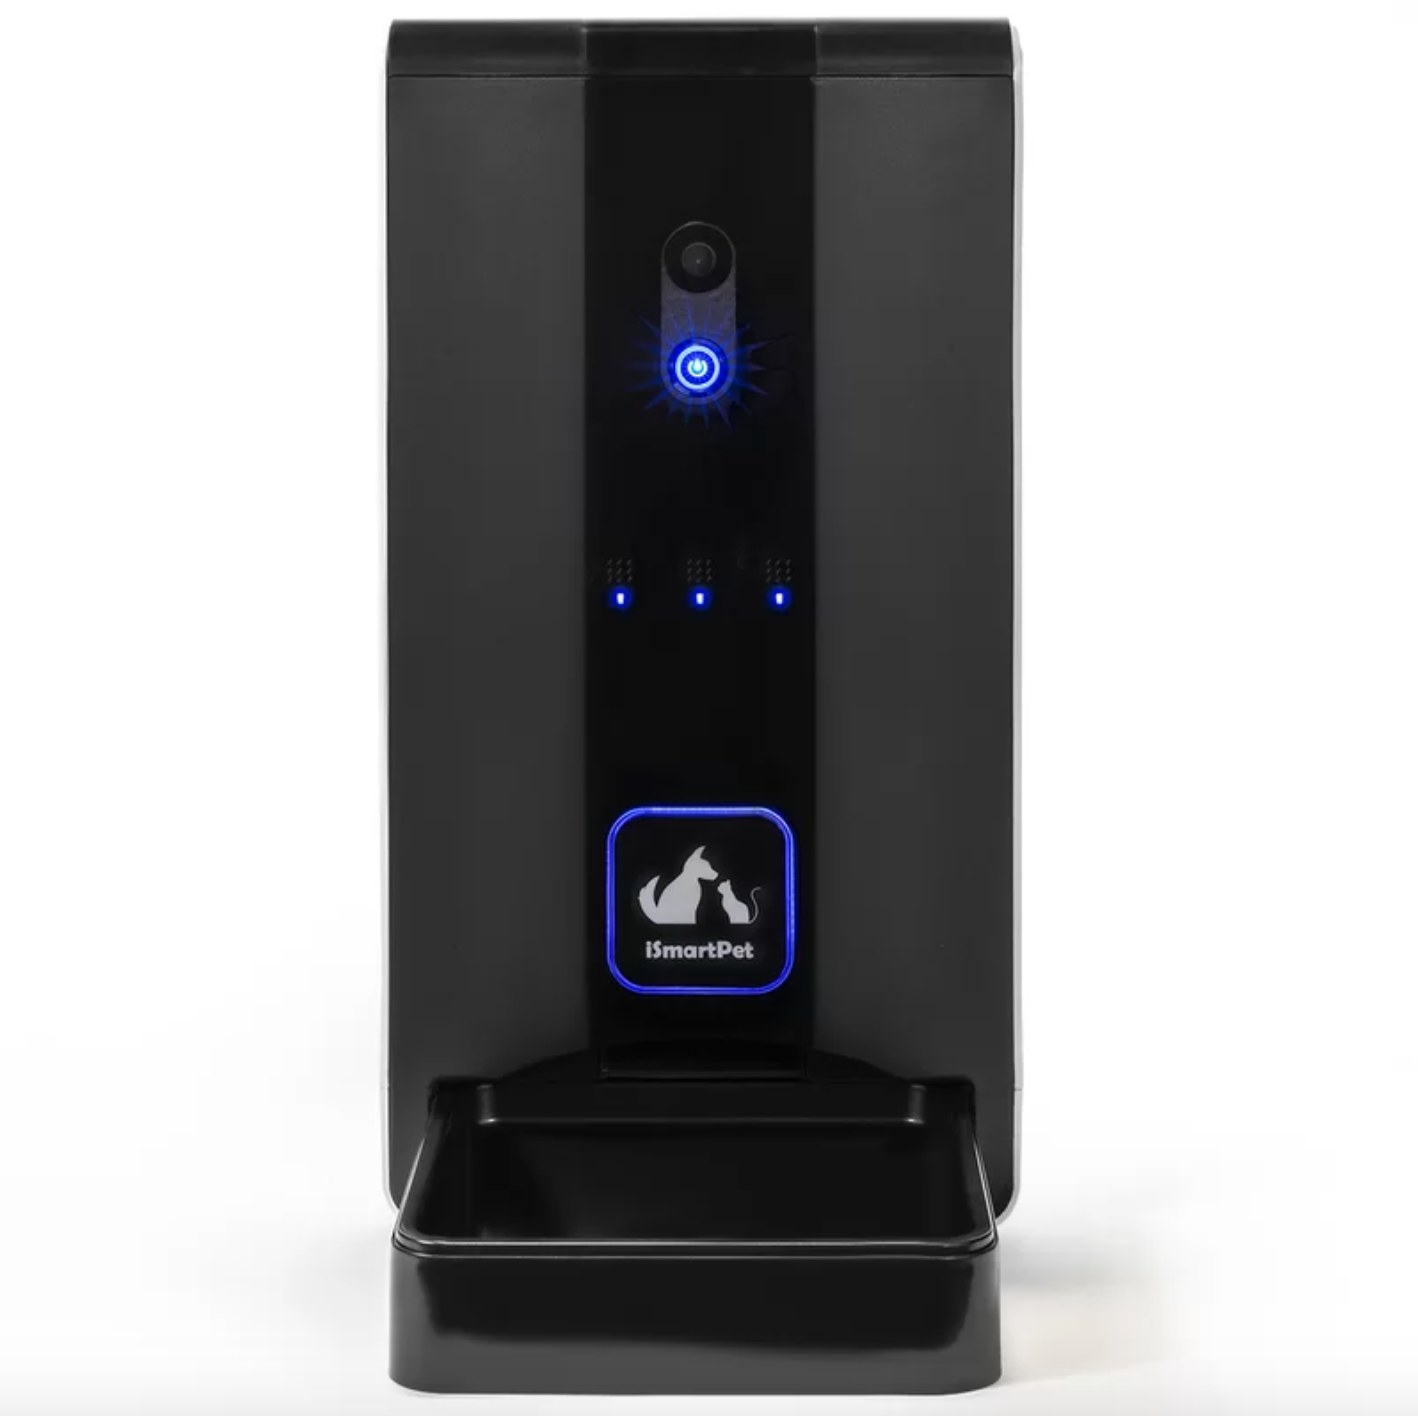 The automatic pet feeder in black